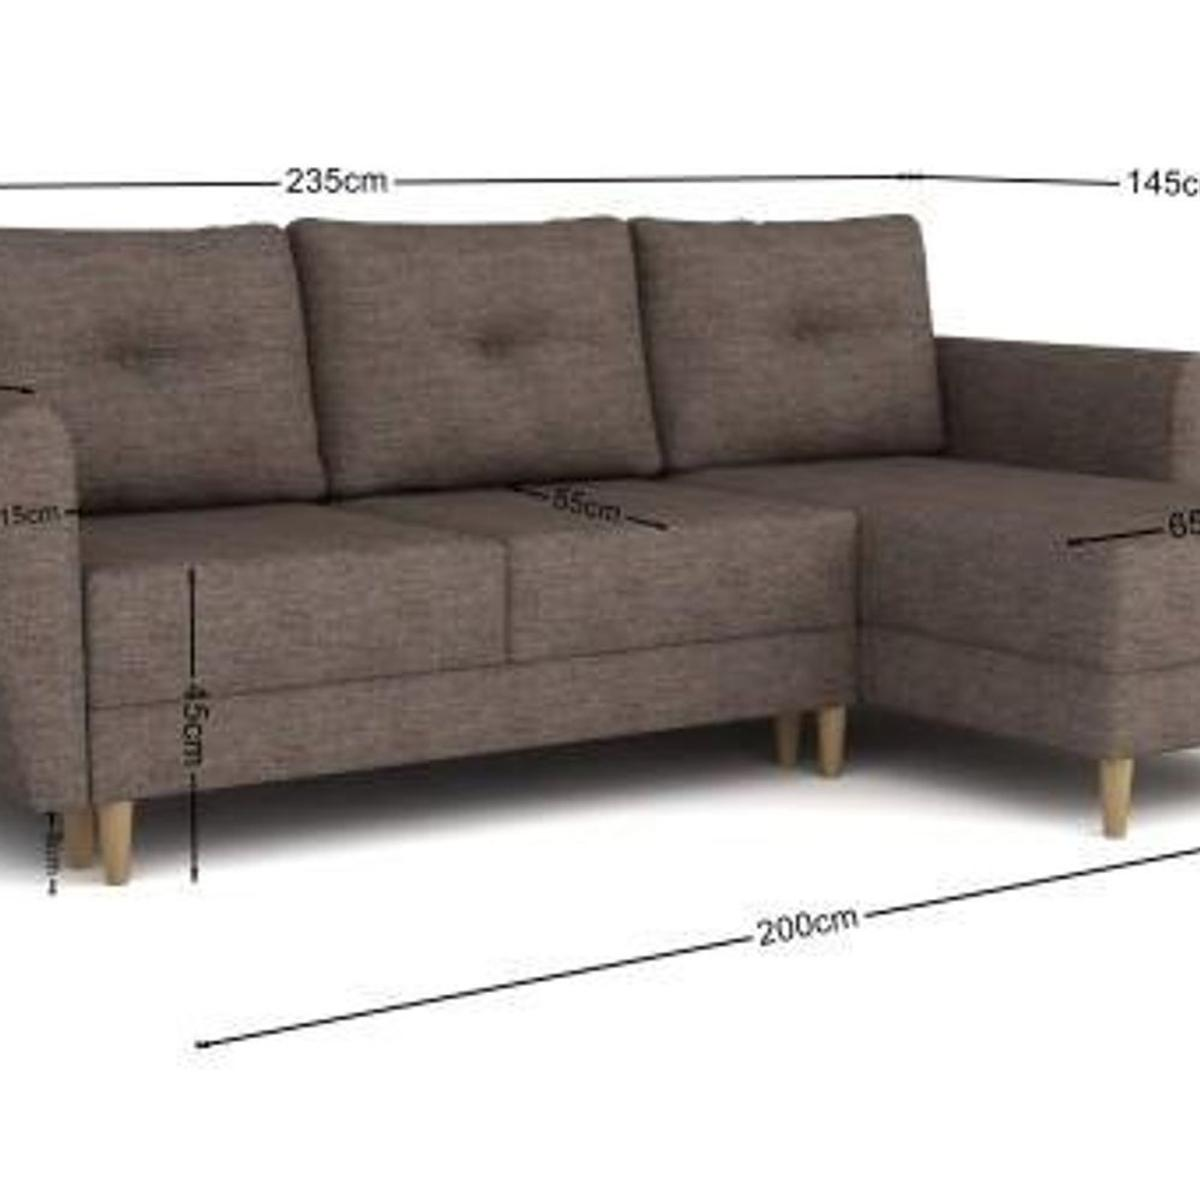 Fantastic New Reversible Corner Sofa Bed In Sw6 London For 399 00 For Dailytribune Chair Design For Home Dailytribuneorg